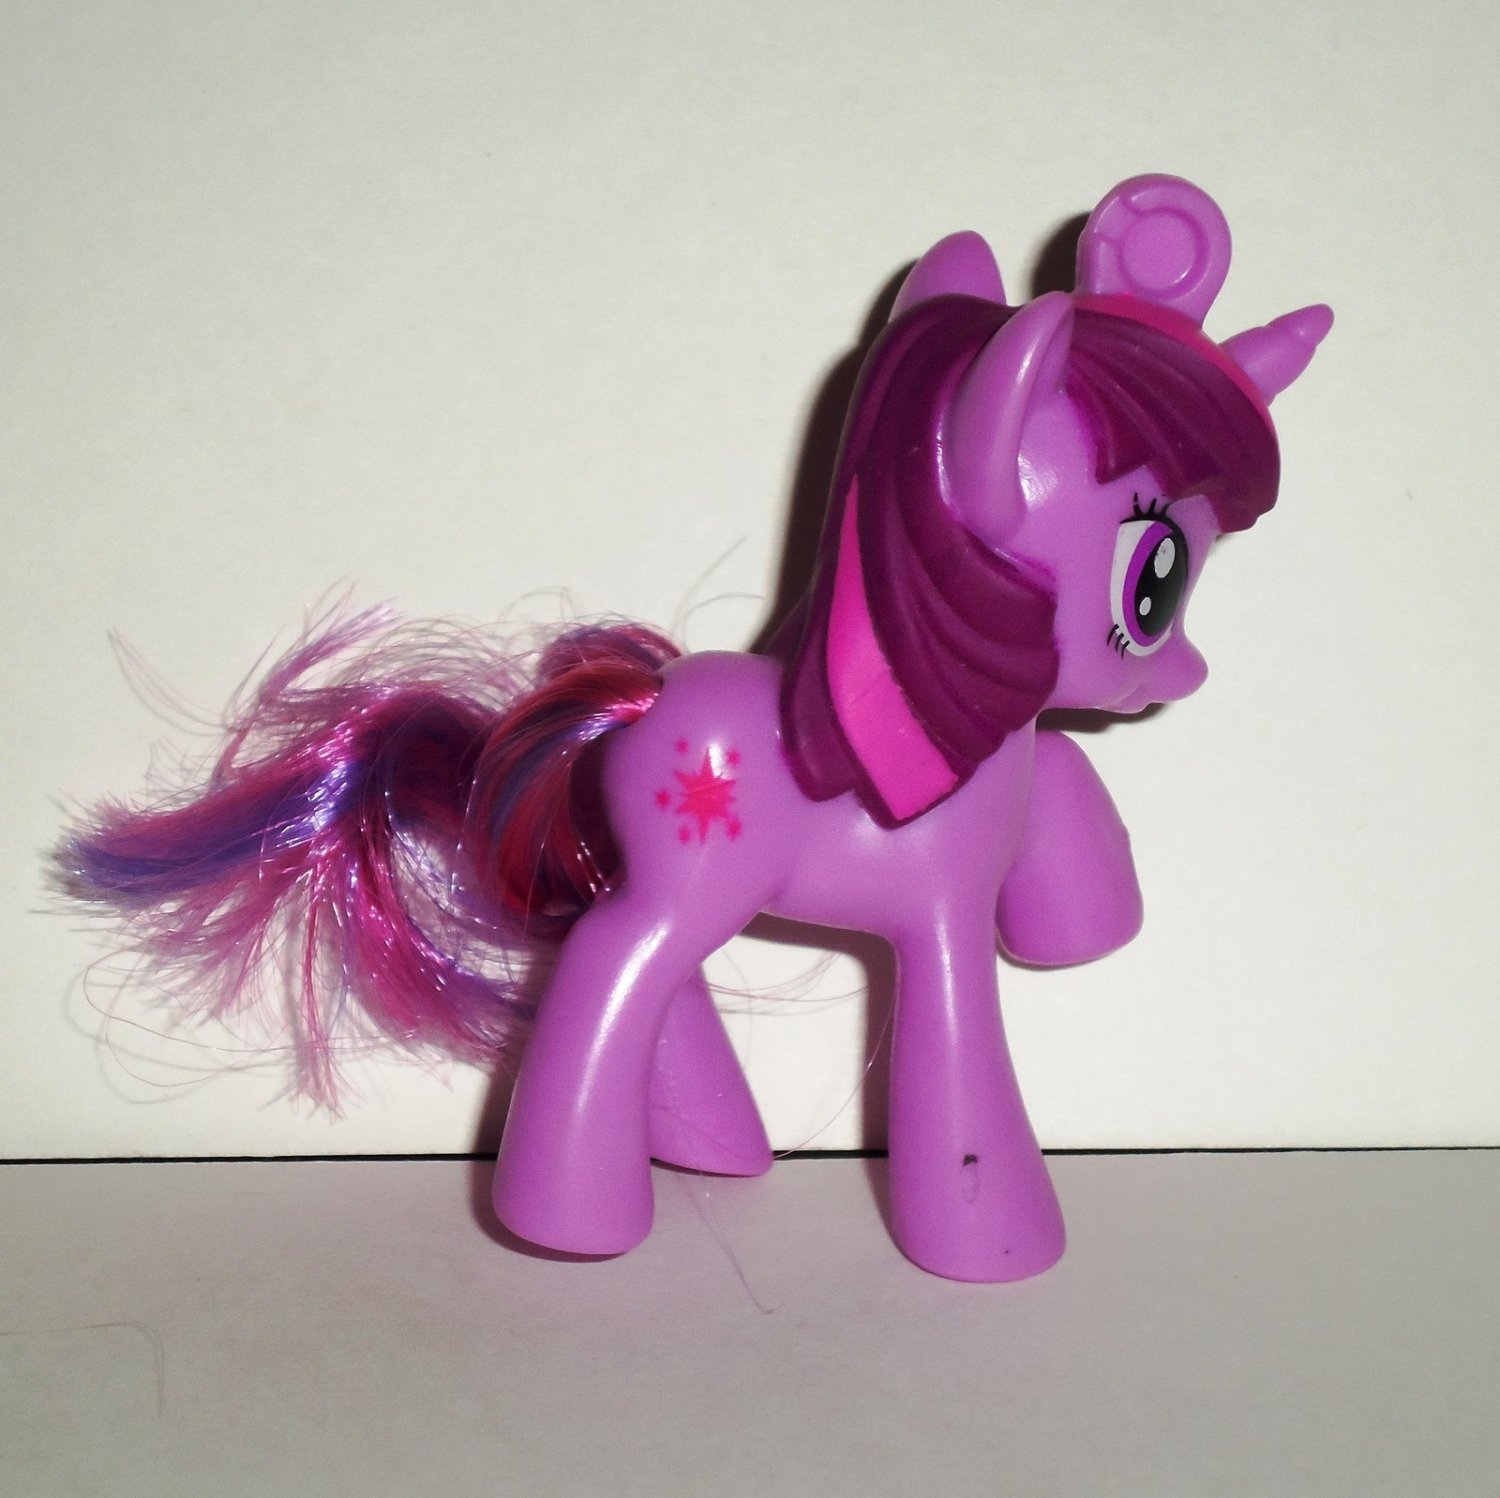 McDonald's 2012 My Little Pony Twilight Sparkle Happy Meal Toy Hasbro Loose Used